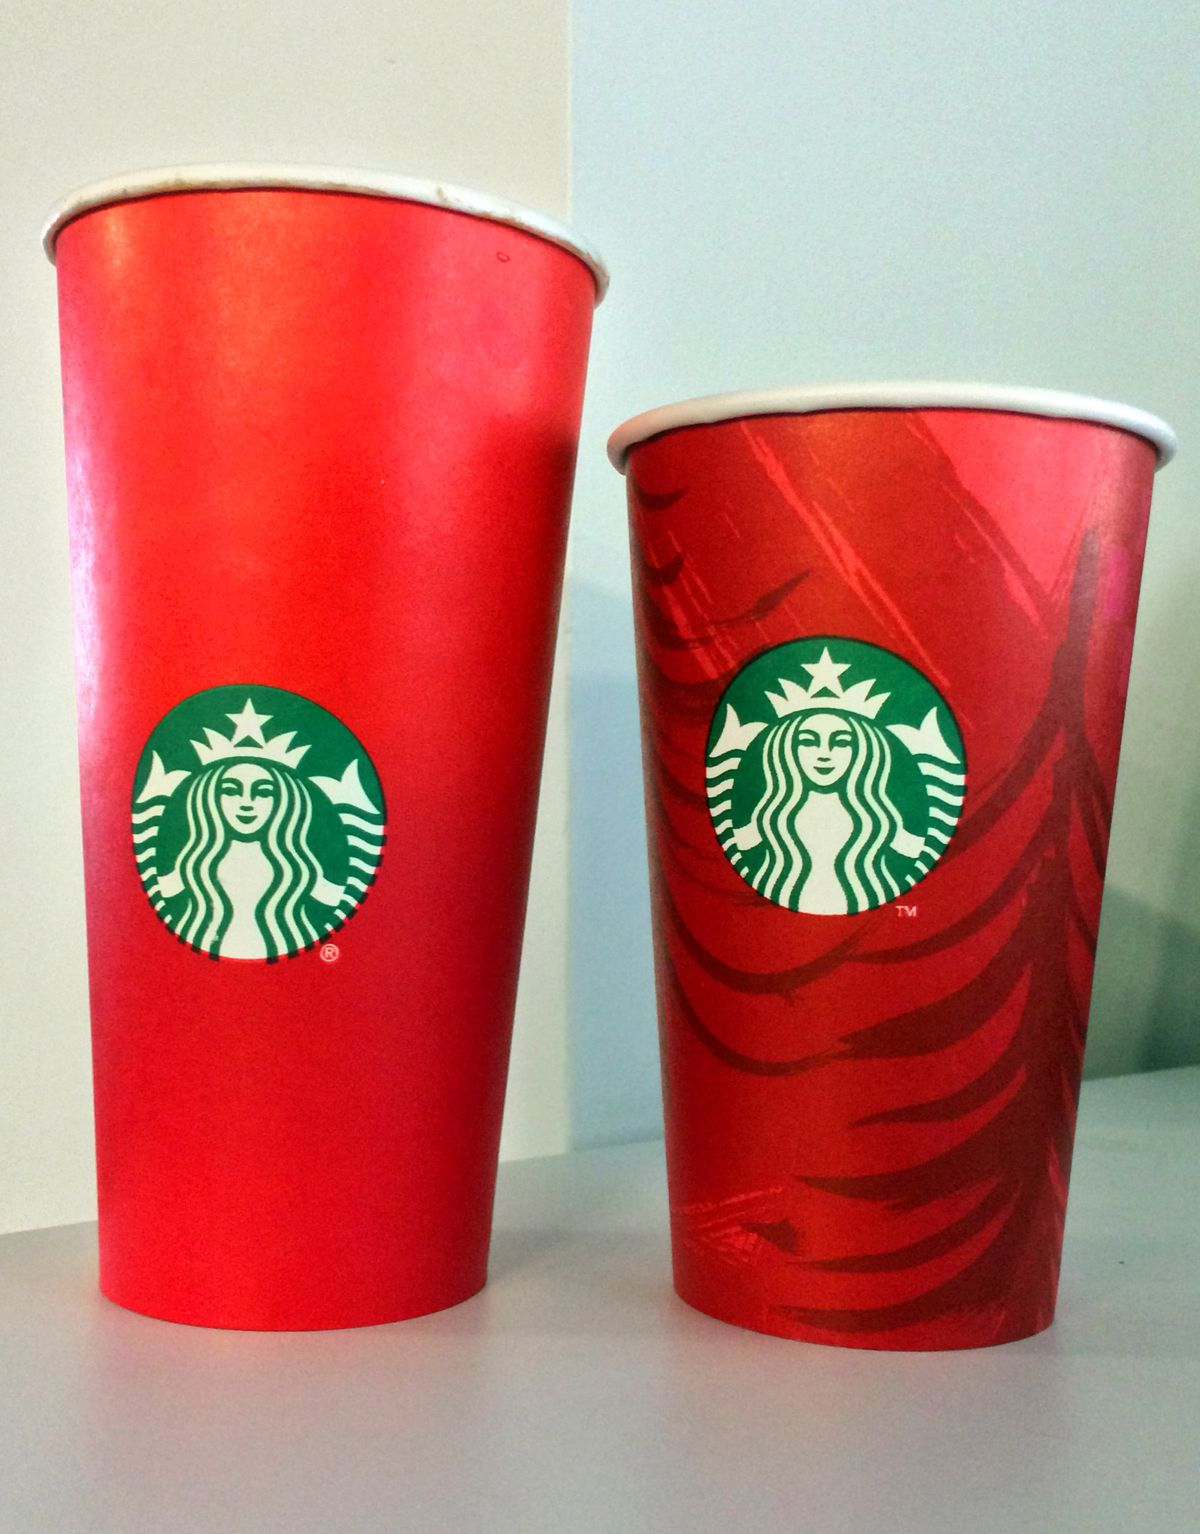 Starbucks S Red Cup Controversy Explained Vox